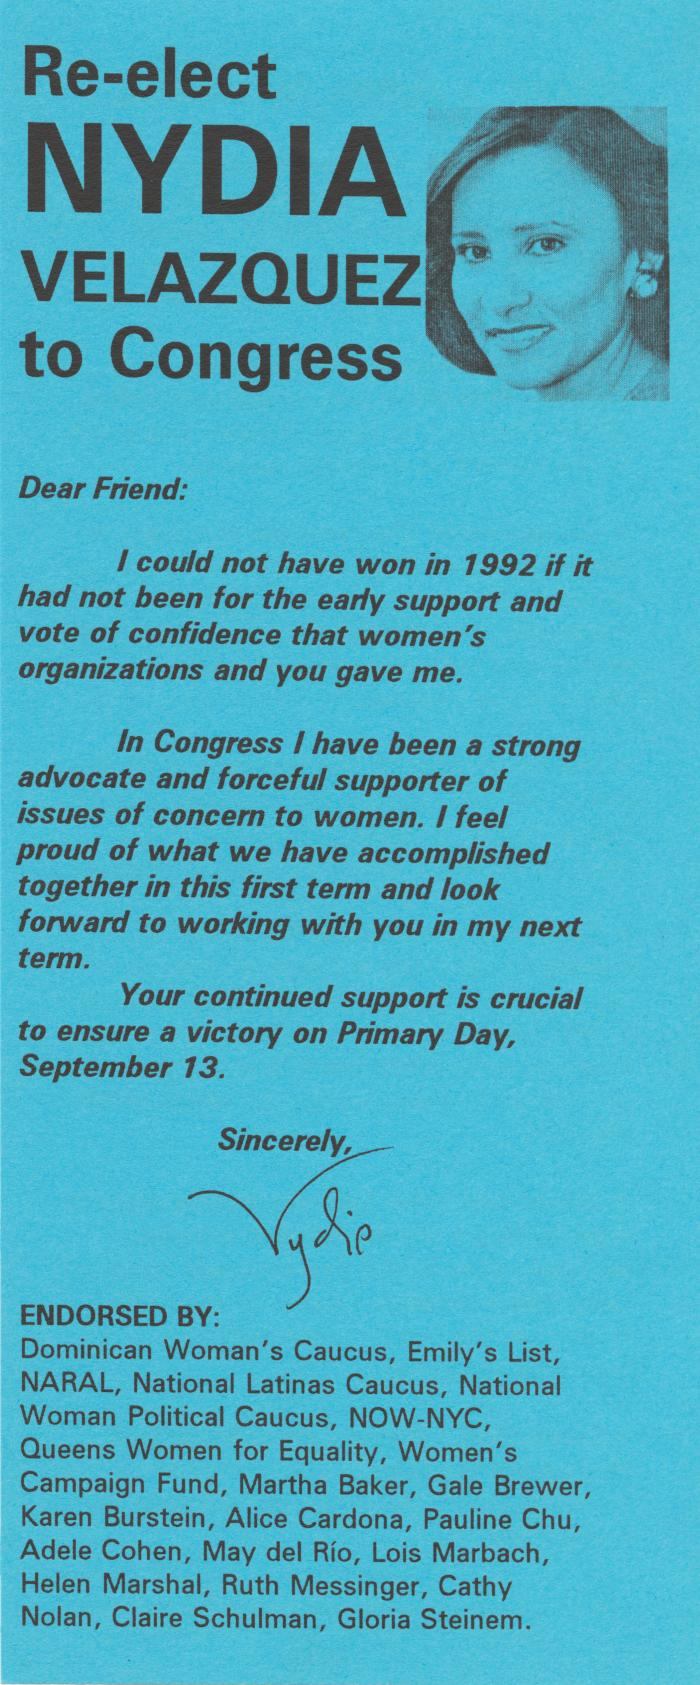 Flyer for the re-election of Nydia Velazquez to Congress